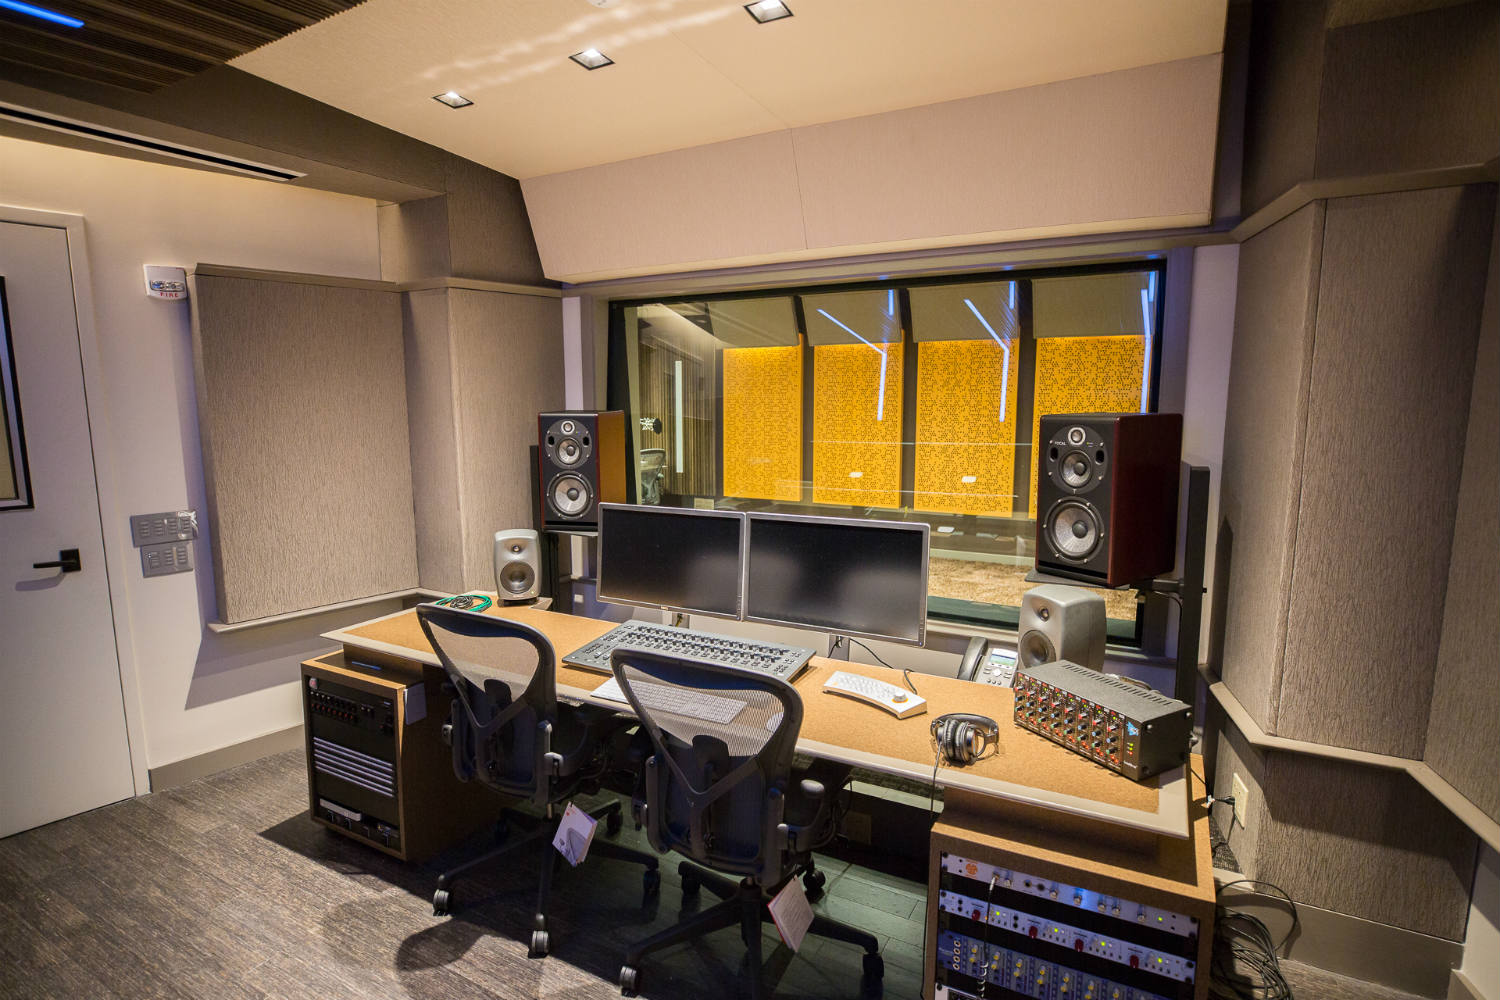 Audible is the world's largest producer/distributor of downloadable audiobooks and other spoken-word entertainment. WSDG was commissioned to design their new state-of-the-art recording studio complex. Control Room A back view